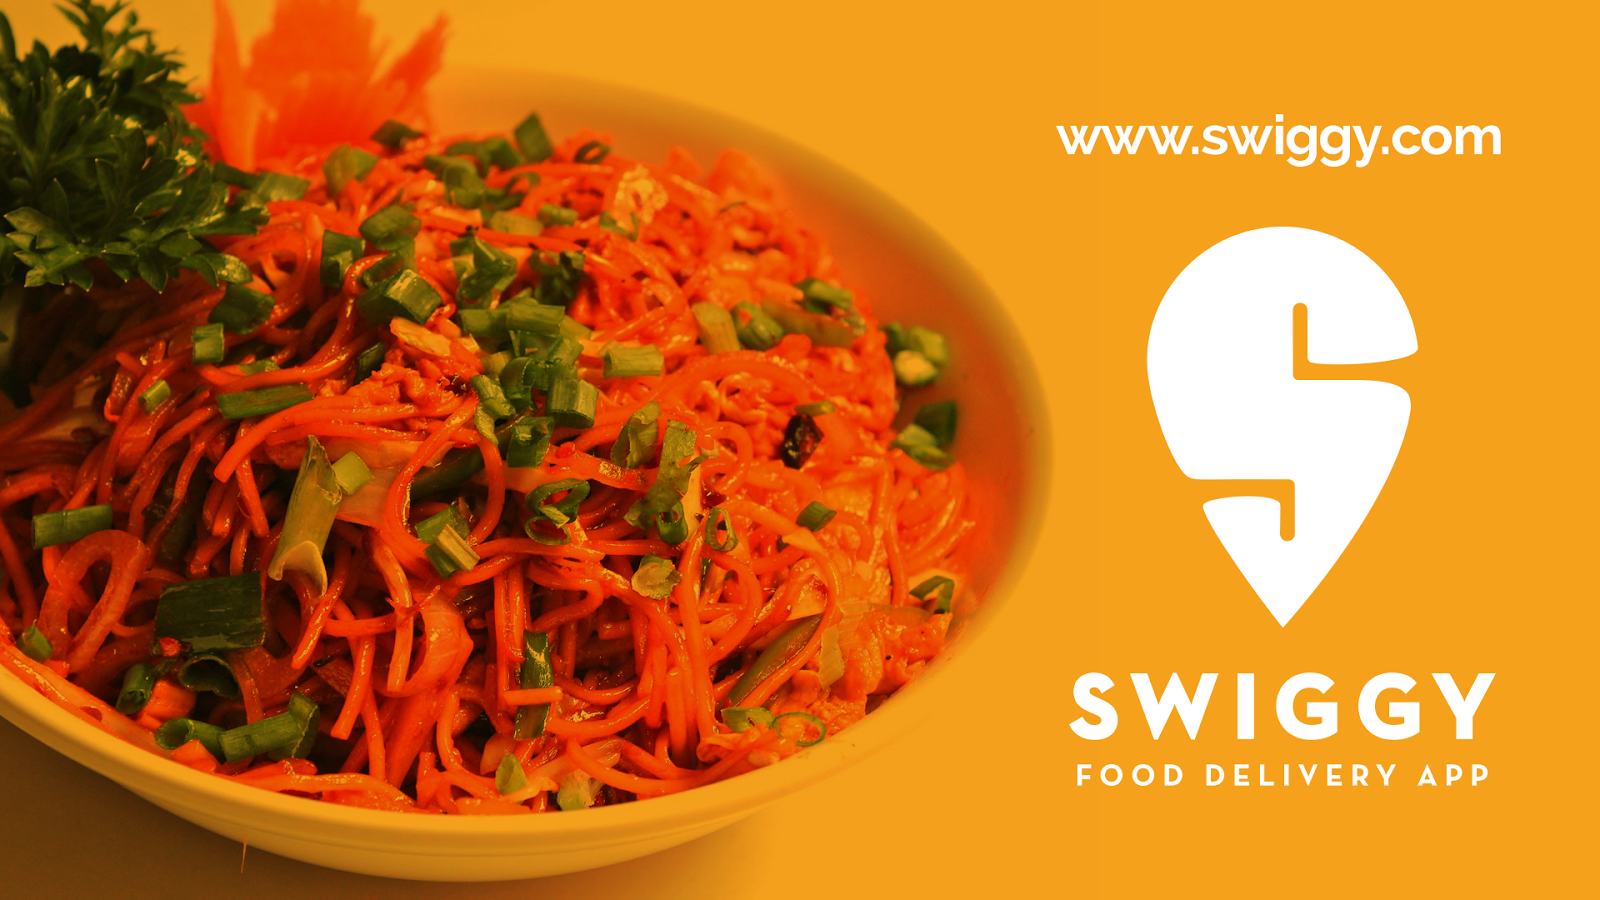 Swiggy Now Delivering Food in 500 Cities, Plans to Reach 100 More by Year-End